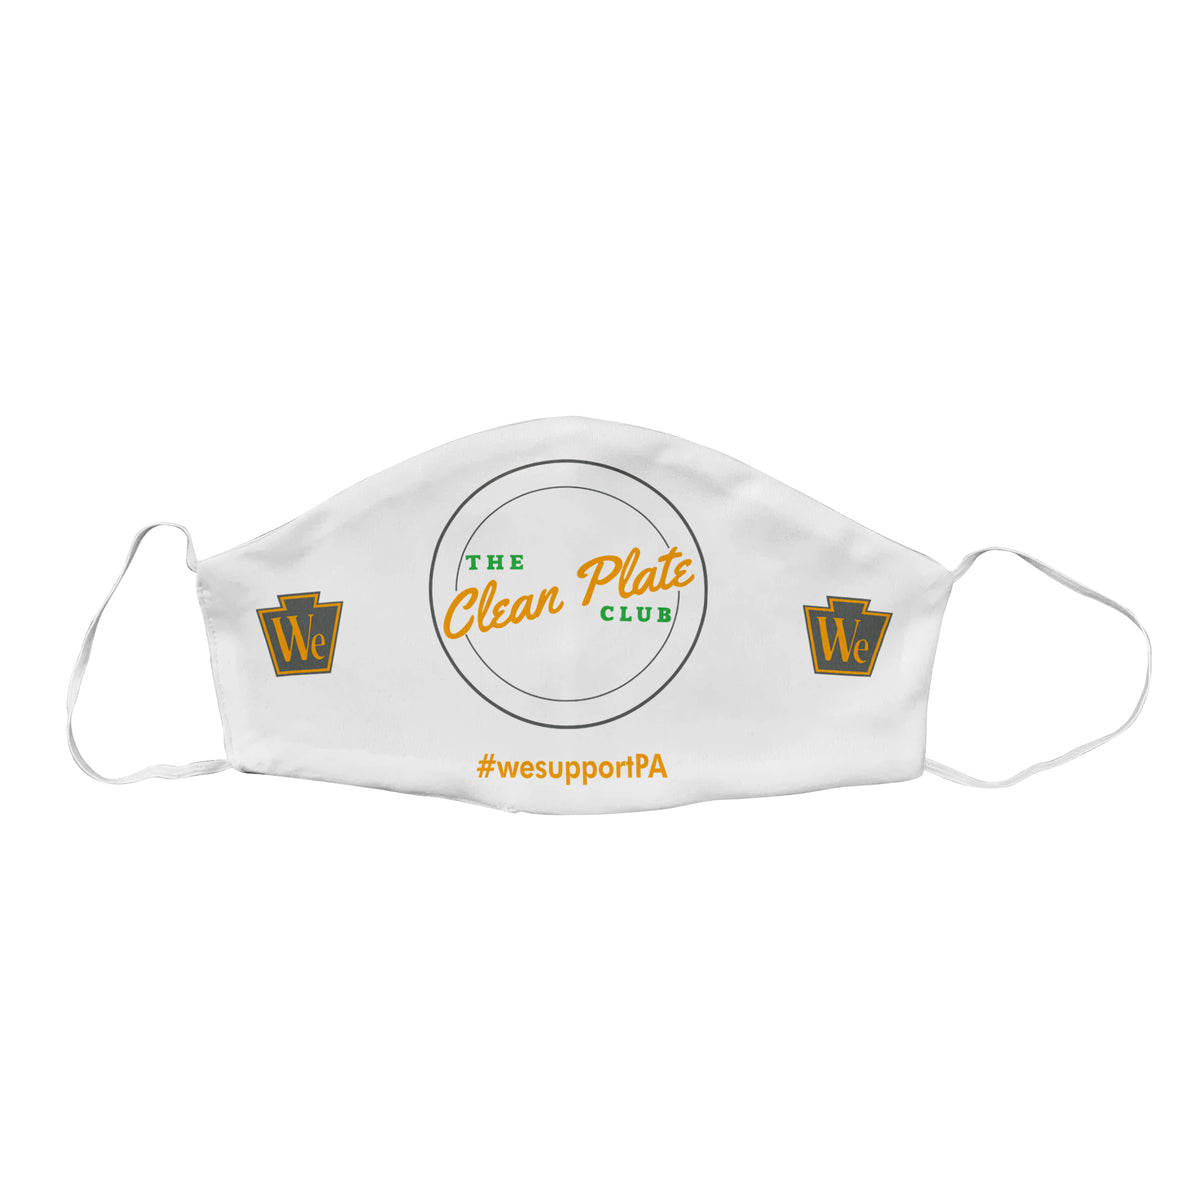 Clean Plate Club We Support PA Face Masks